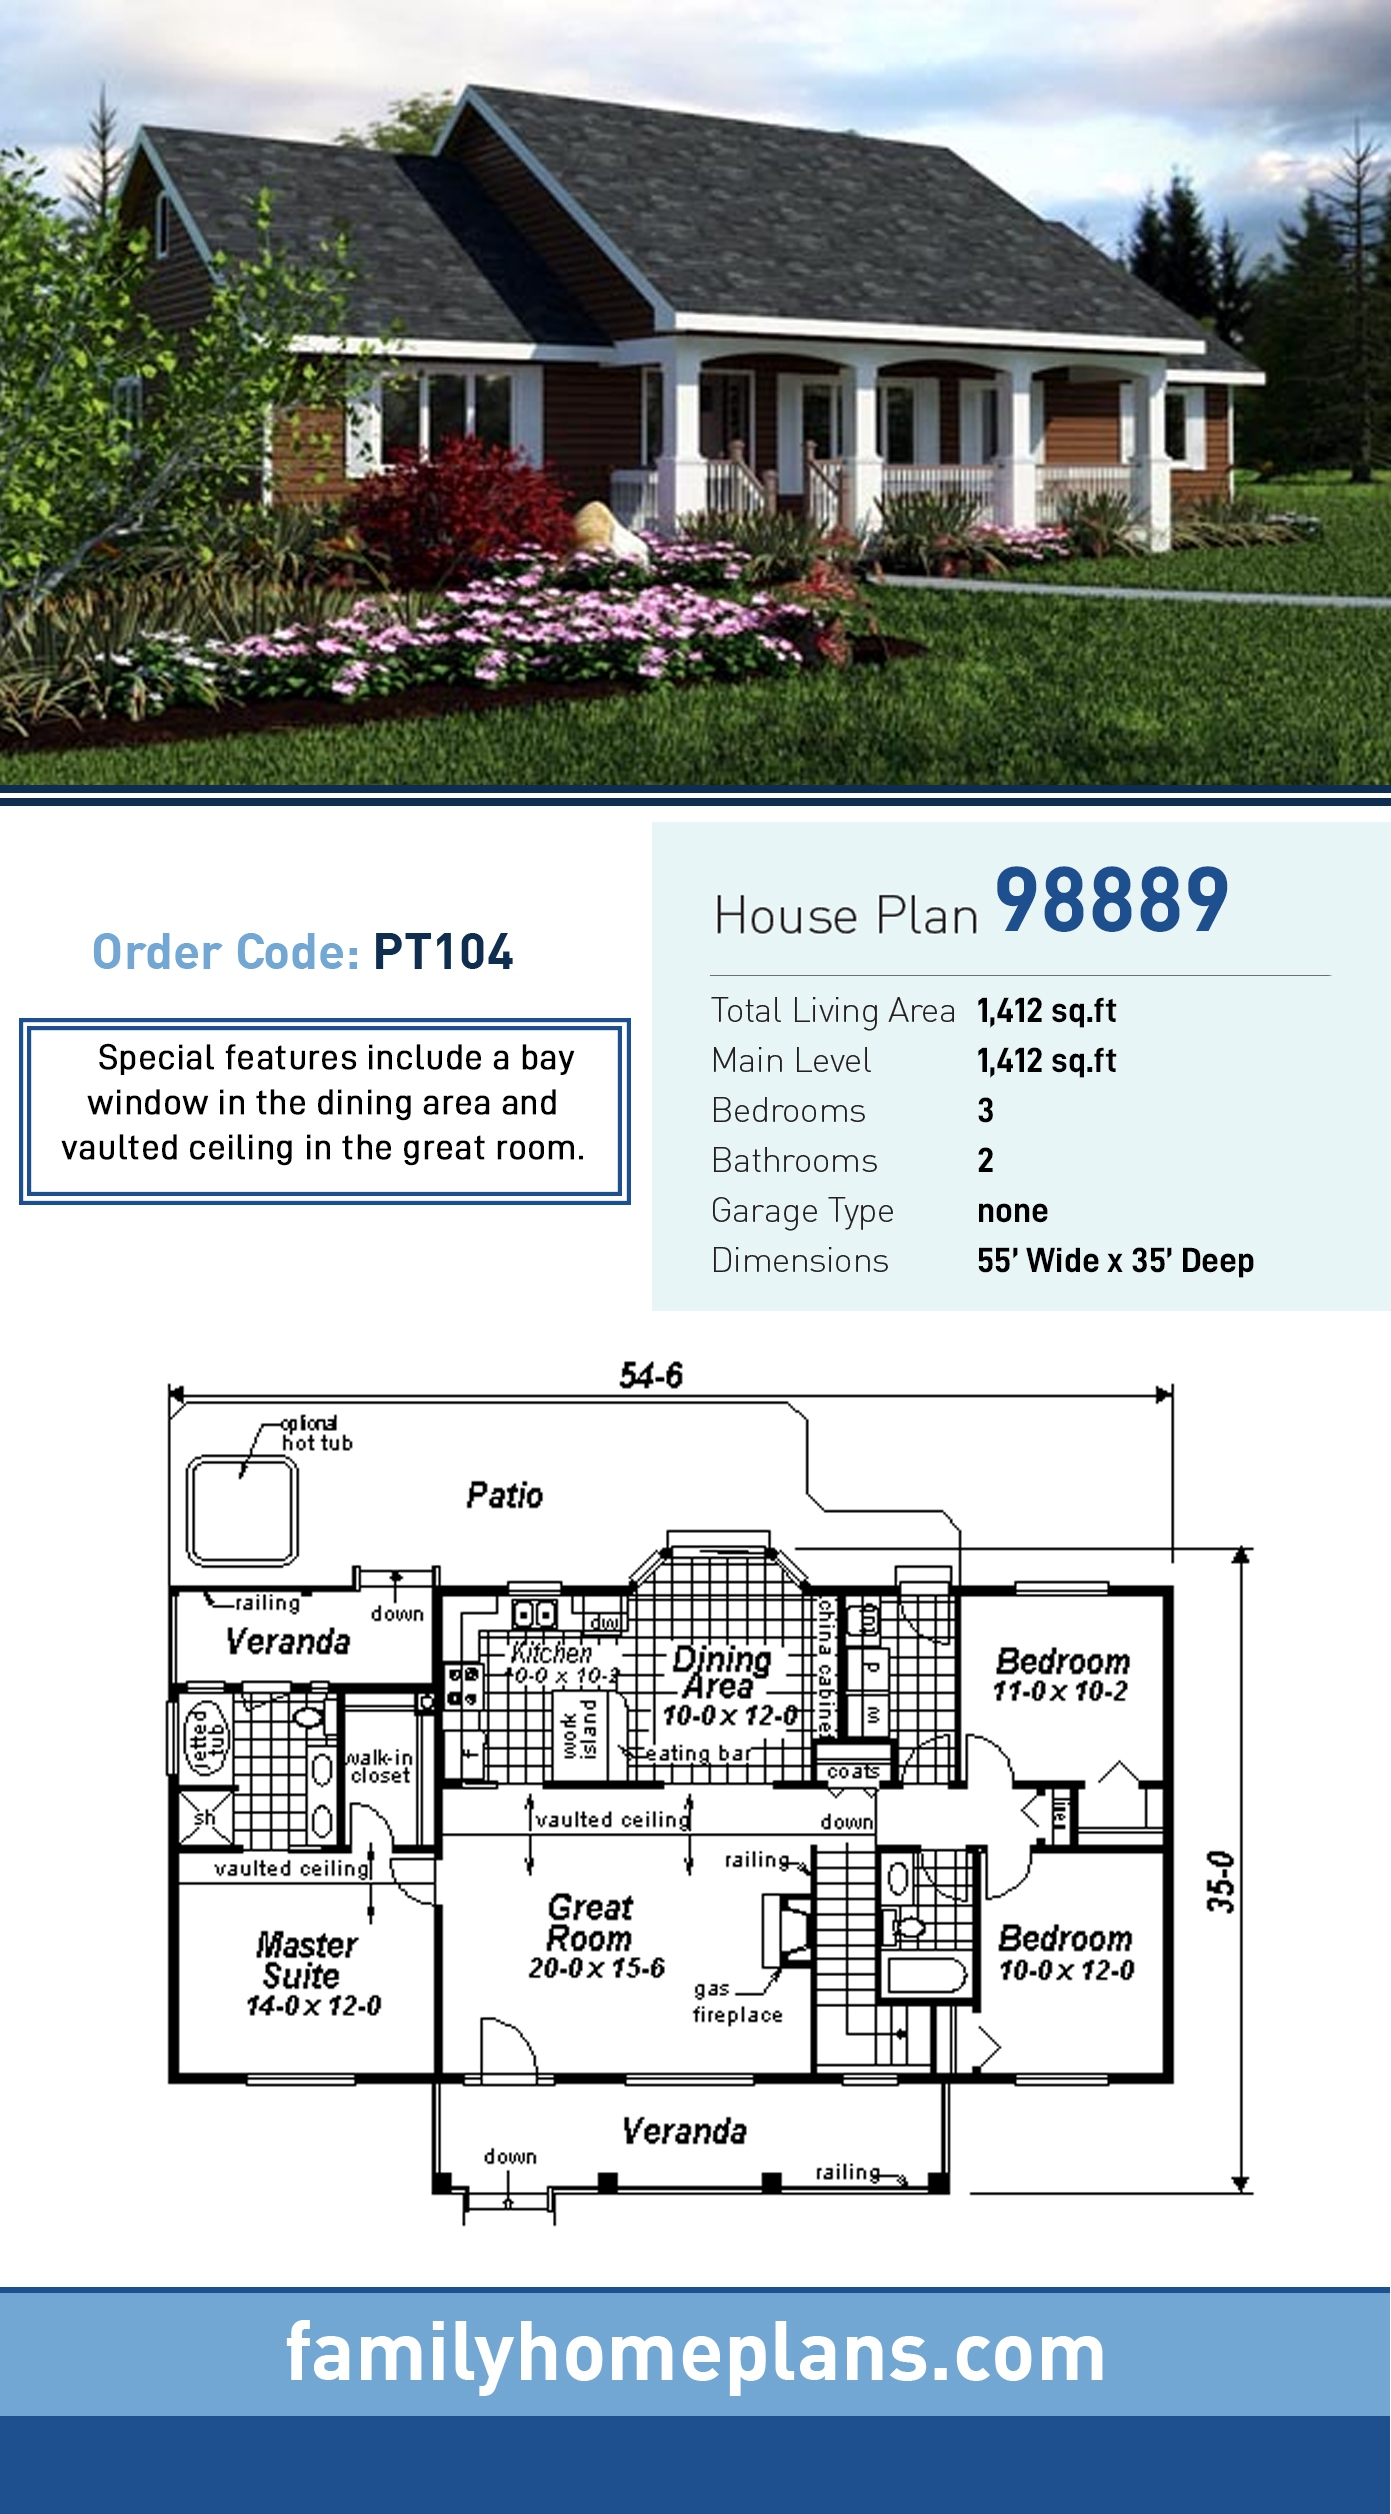 Ranch House Plan 98889 with 3 Beds, 2 Baths